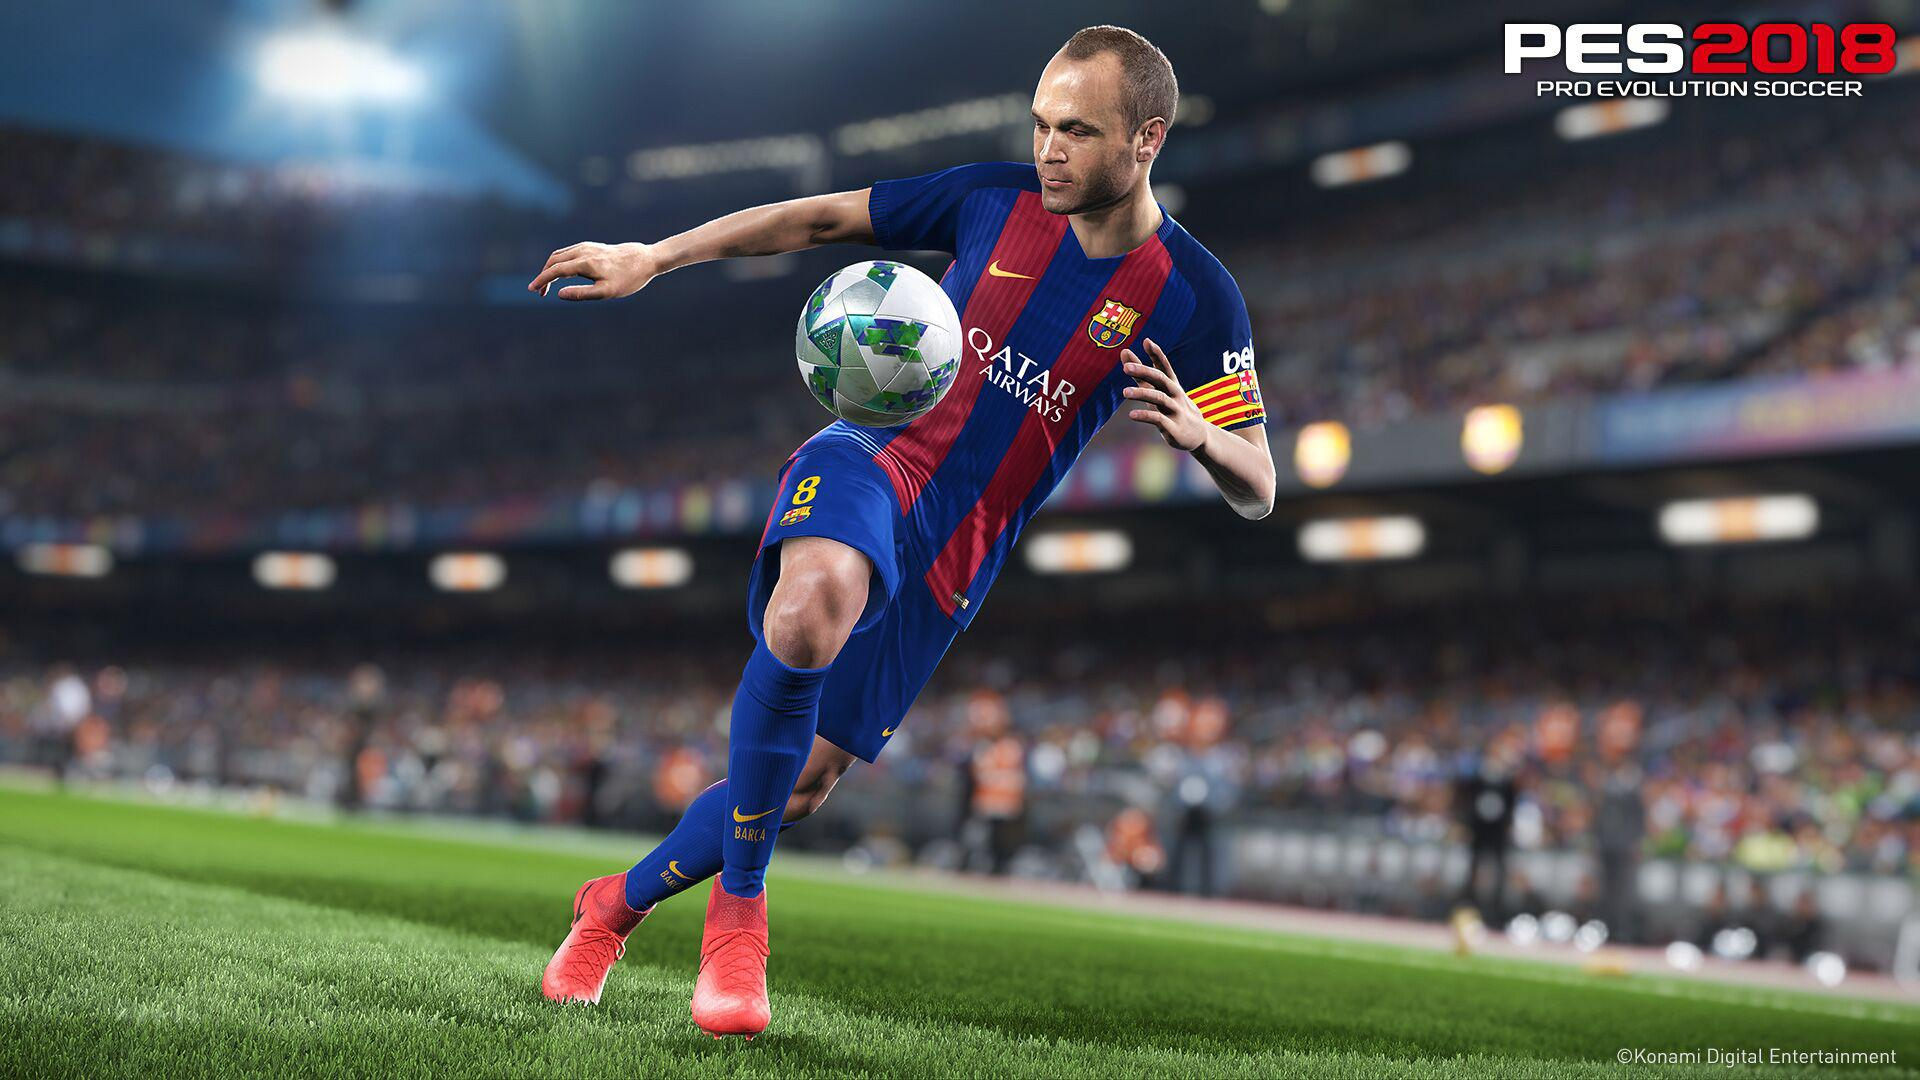 Fox Engine will once again power PES – but Konami has promised a host of visual improvements